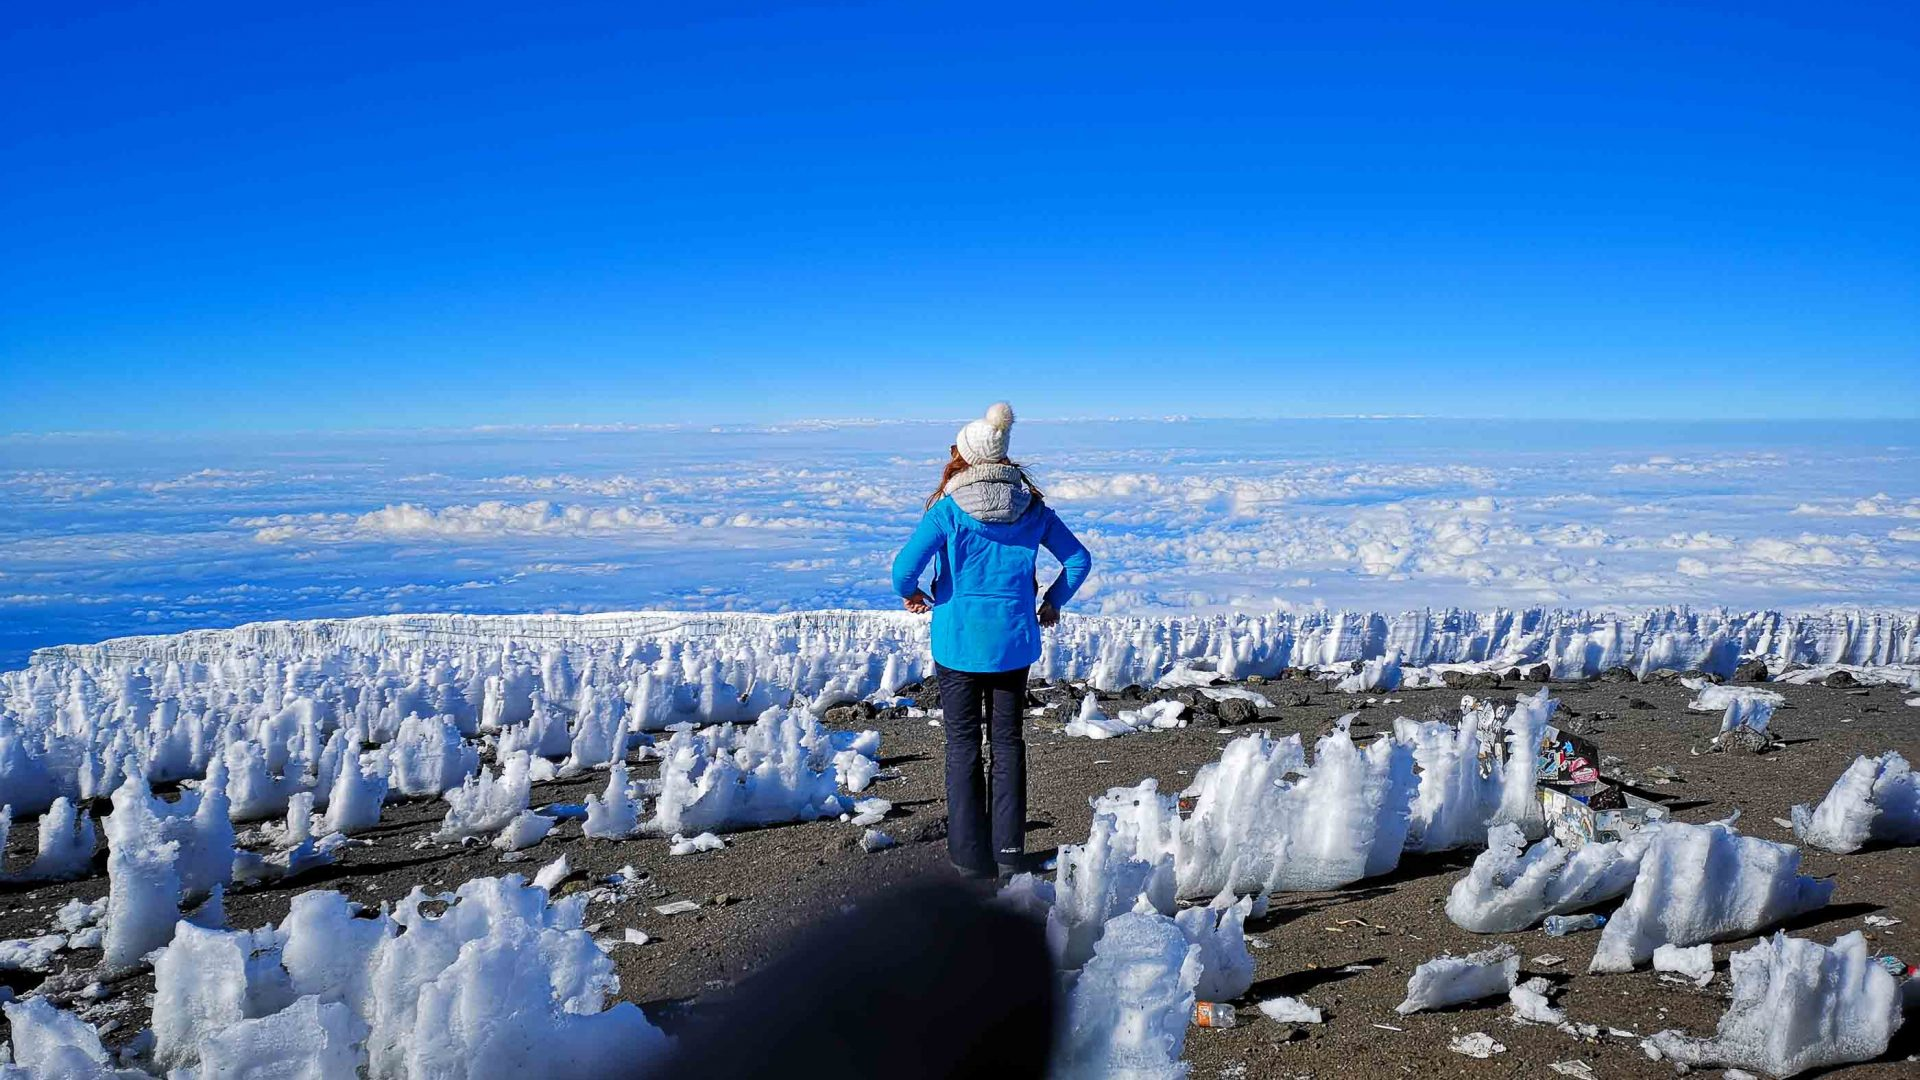 The writer stands back to camera looking out at the view, surrounded by snow.